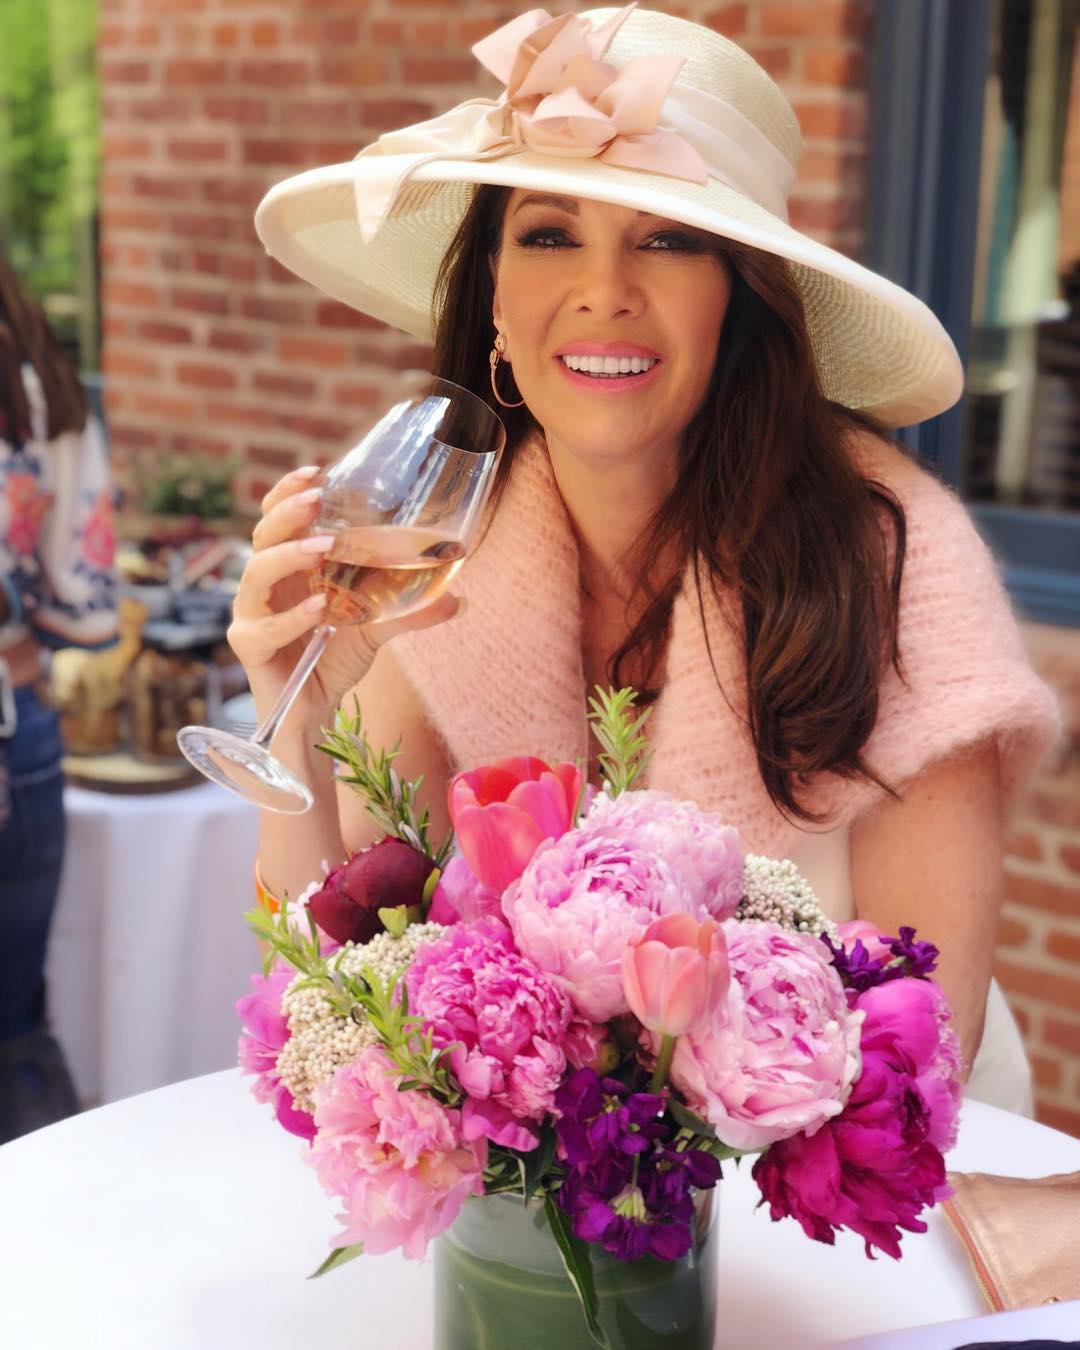 Lisa Vanderpump Drinking Wine